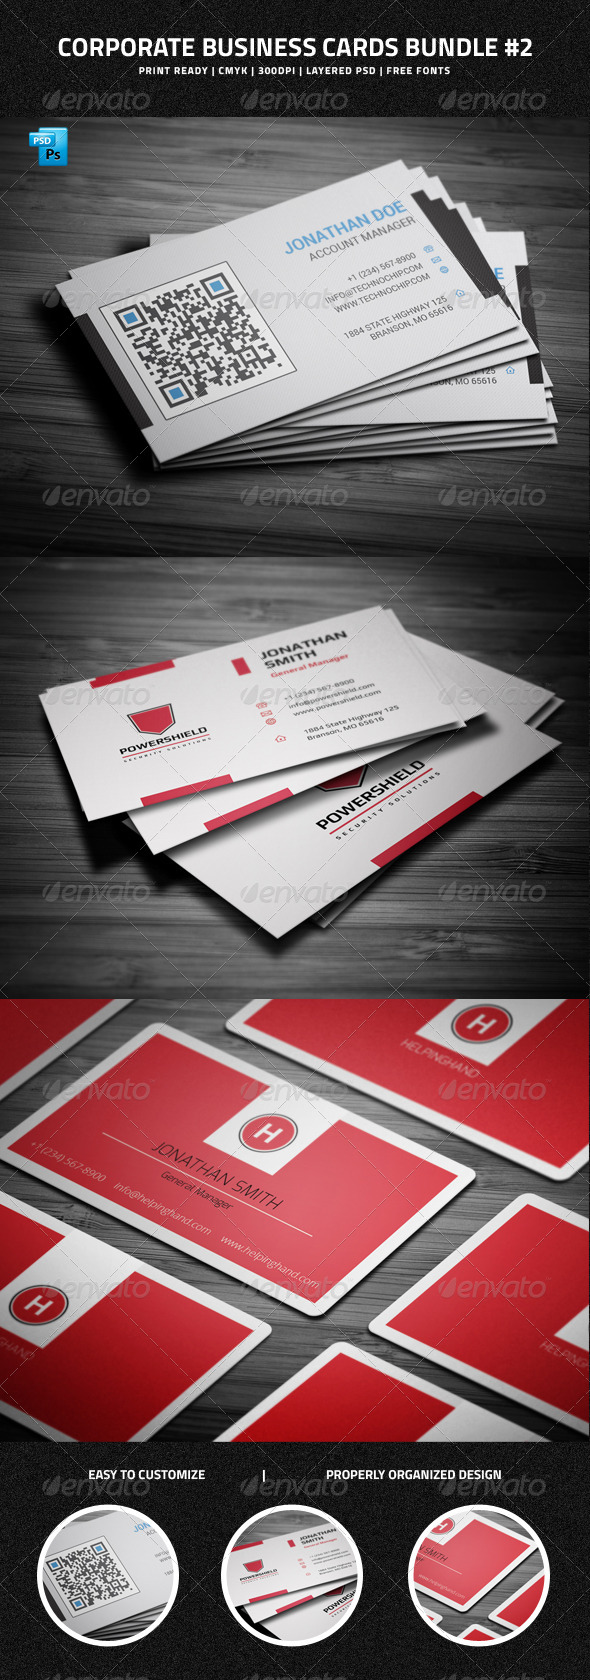 GraphicRiver Corporate Business Cards Bundle #2 6550093